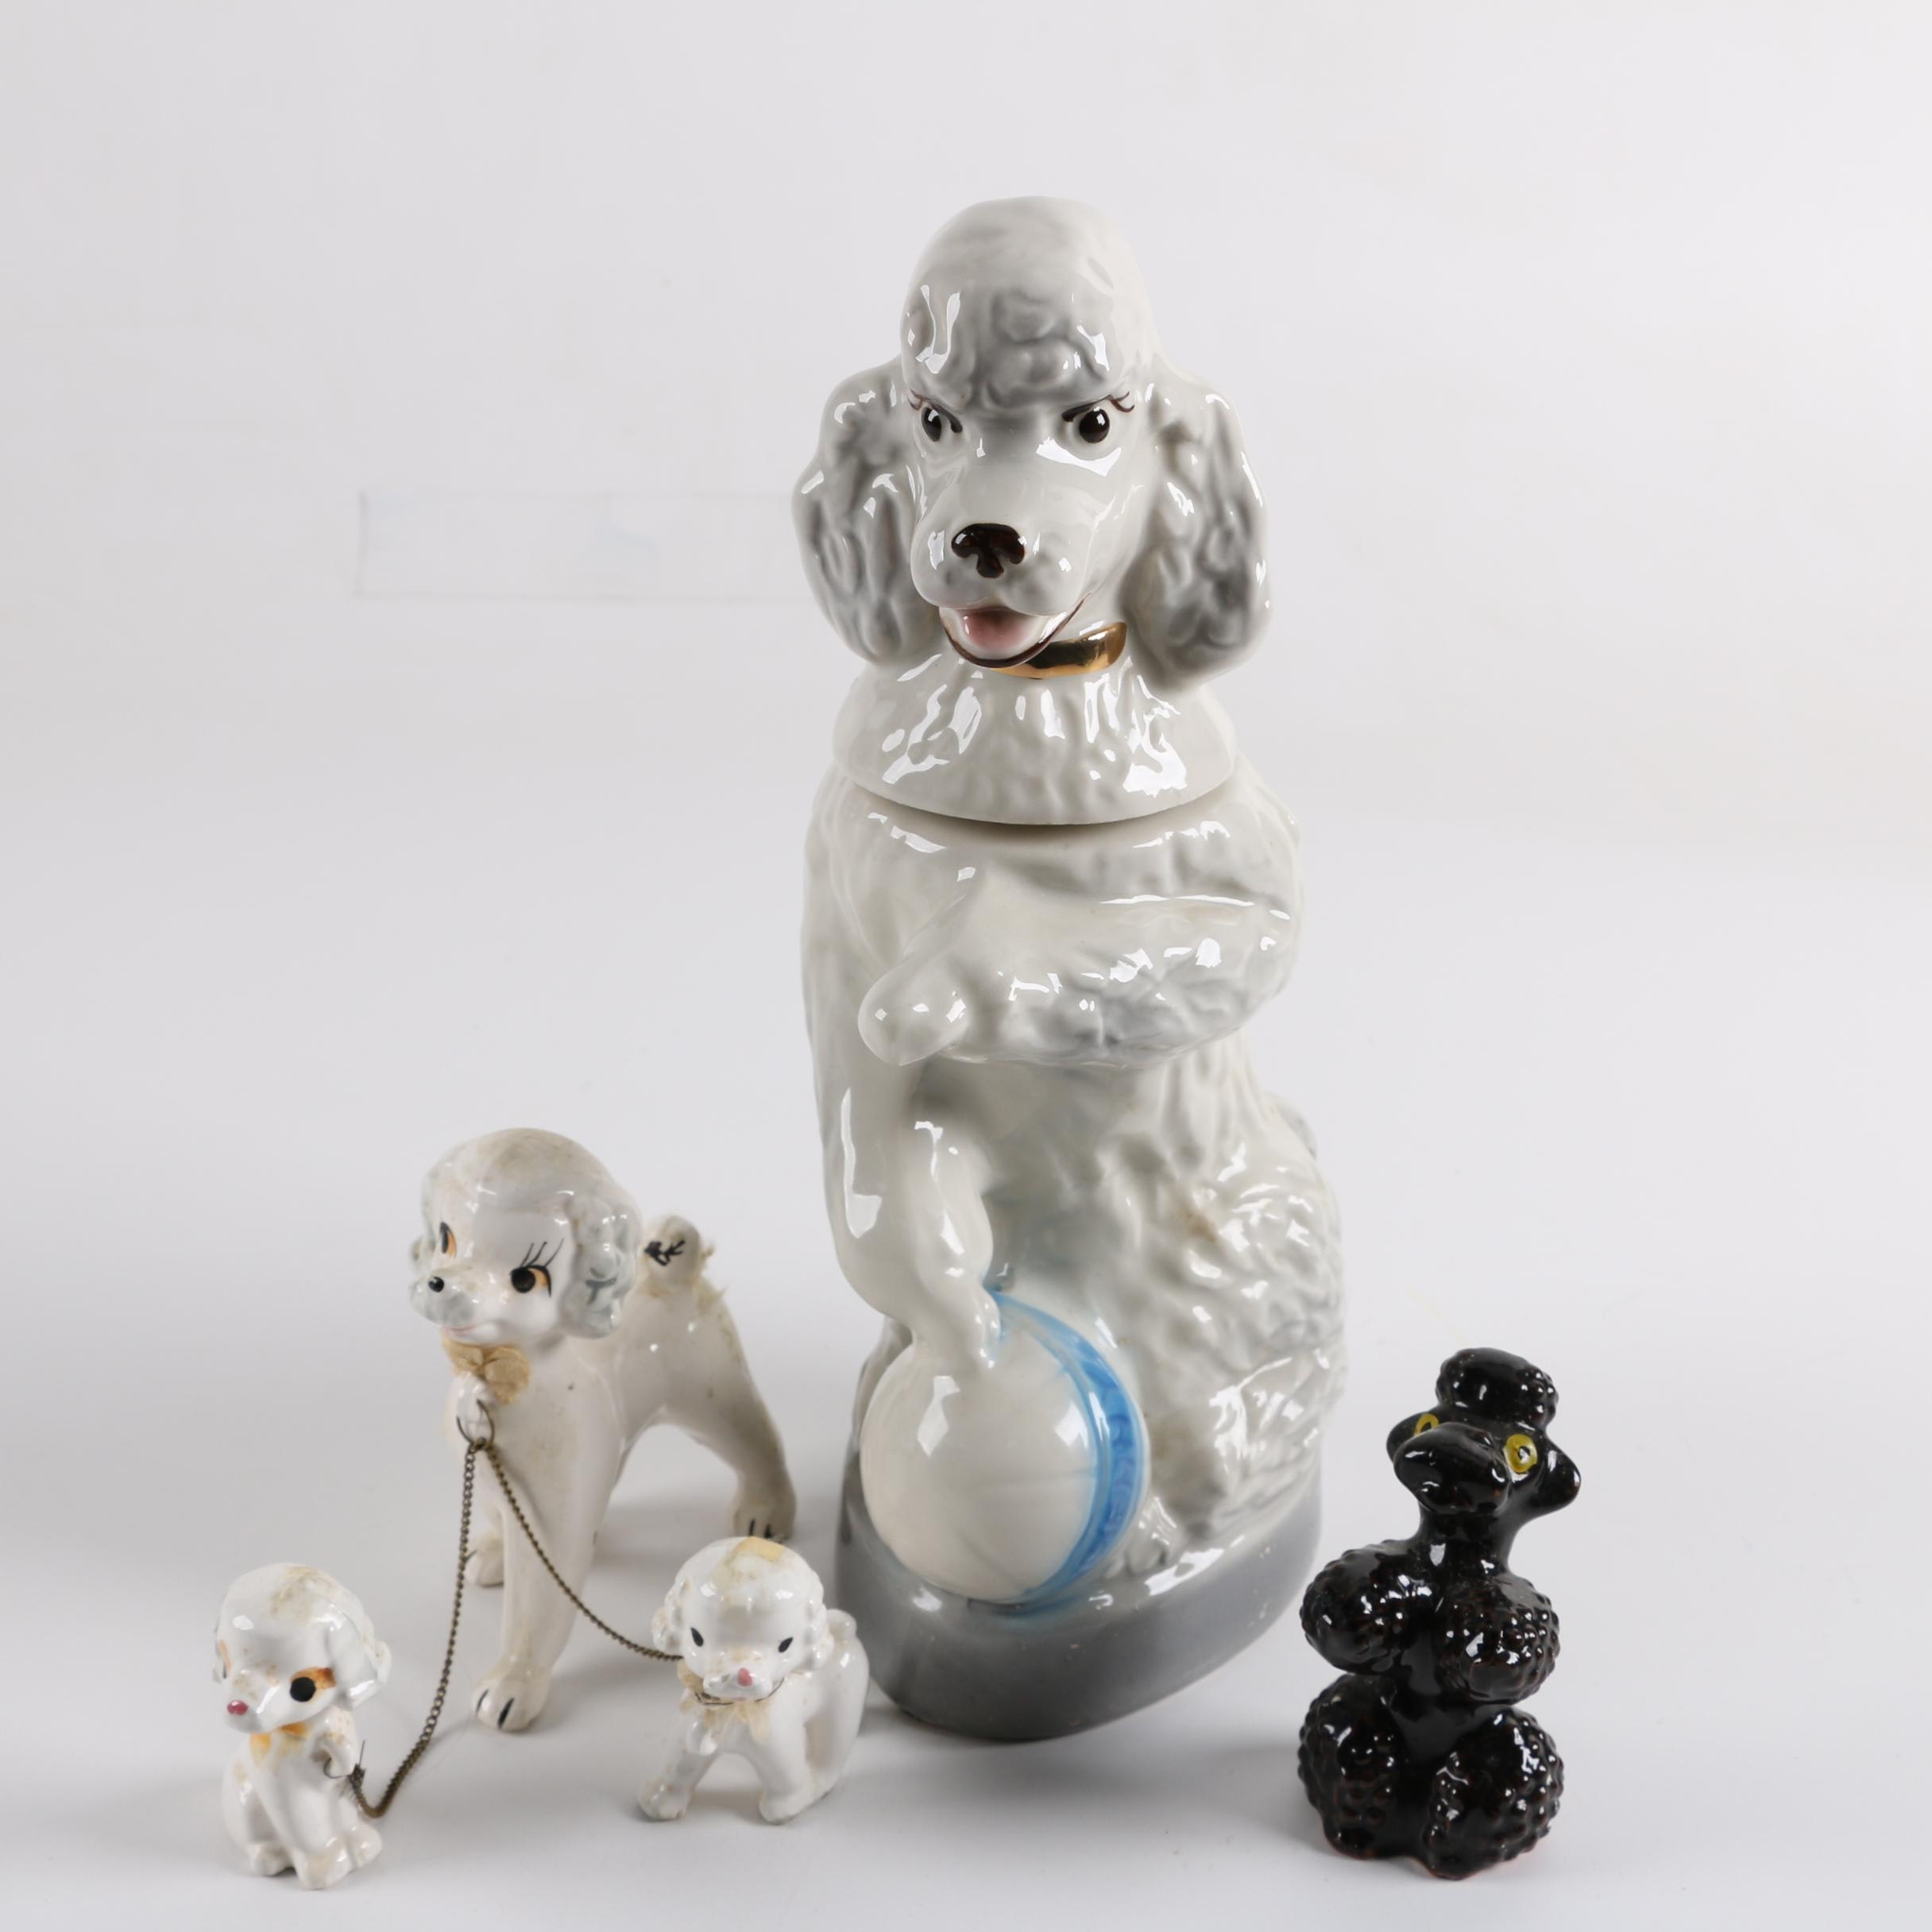 Vintage Ceramic Poodle Figurines including a Jim Beam Decanter